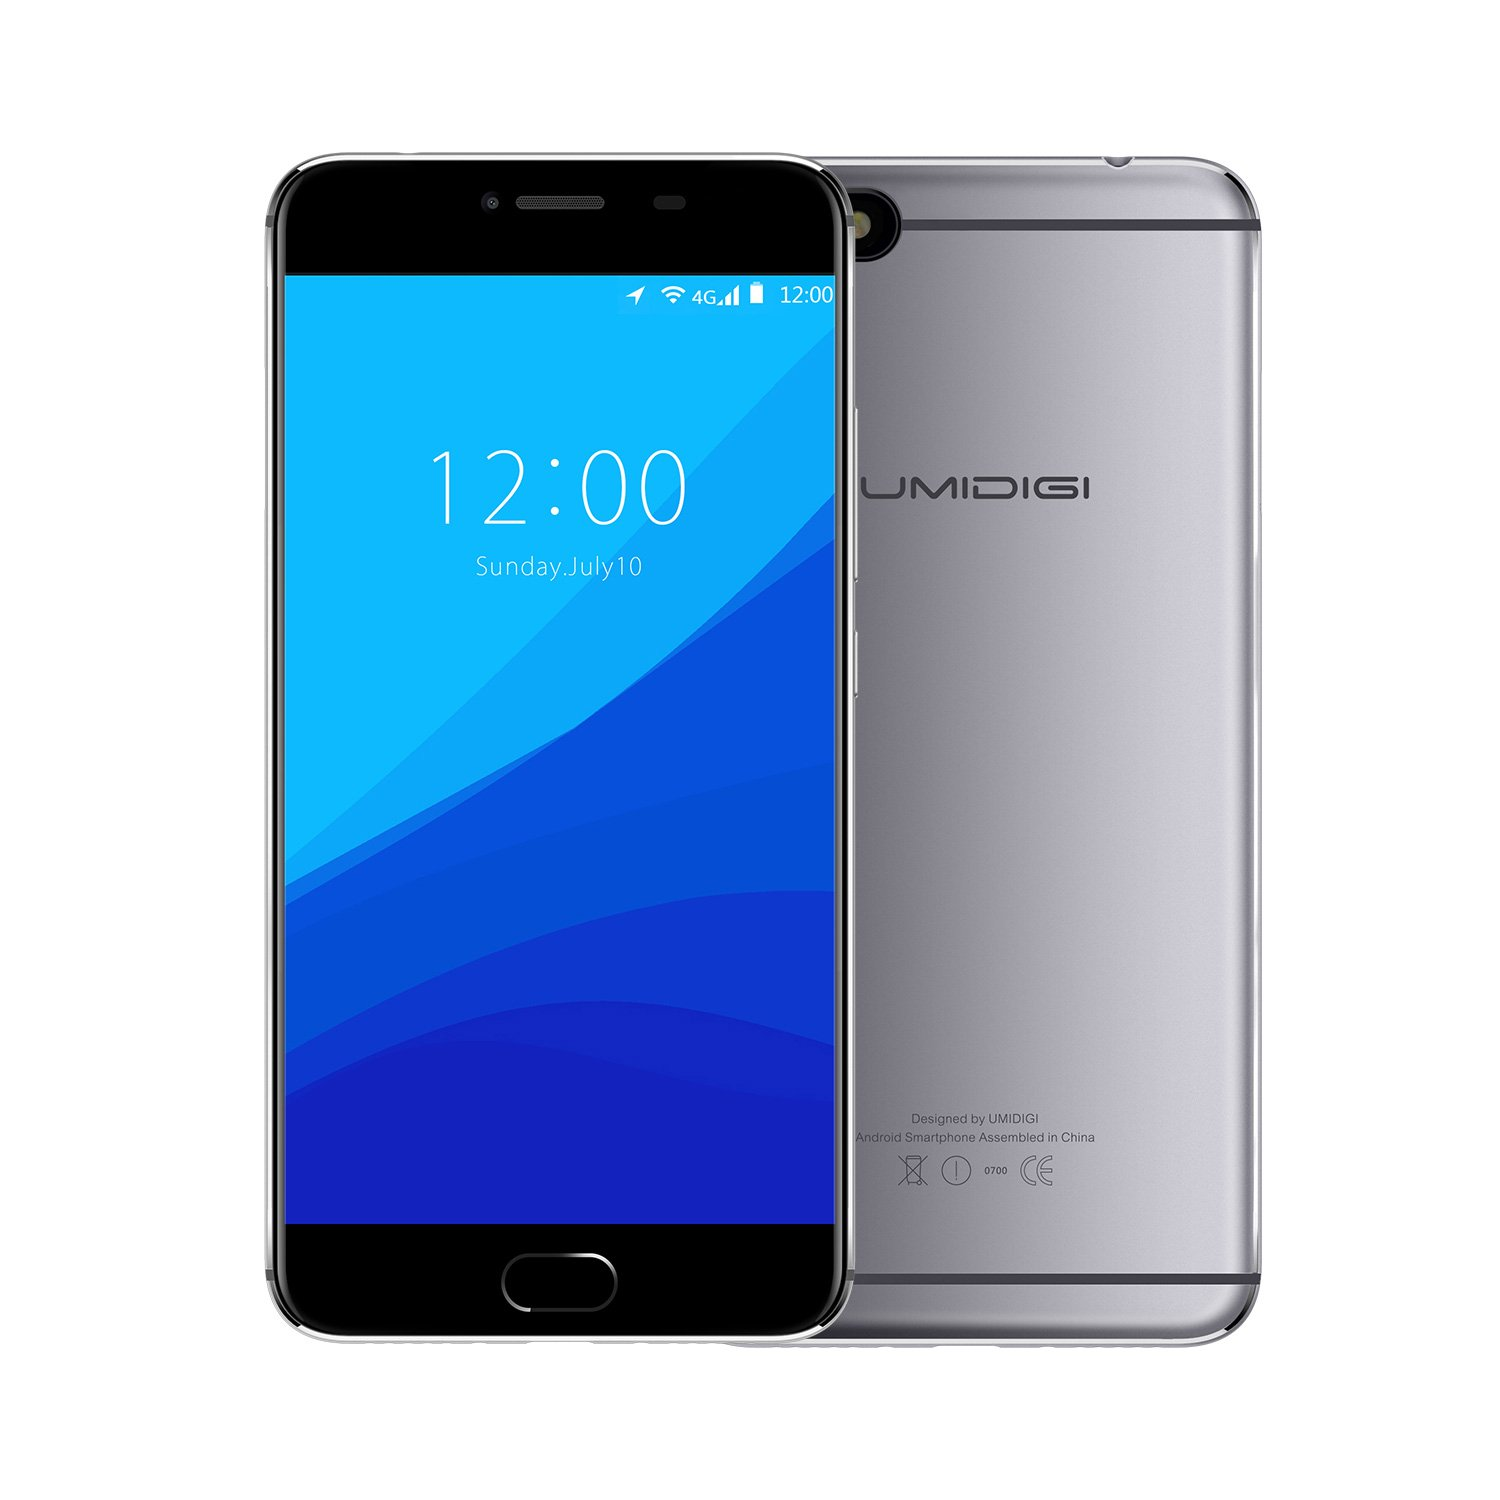 Samsung notebook hoyt6yx - Umidigi C Note Smartphone 5 5 Pouces Android 7 0 3gb Ram 32gb Rom 4g Cpu Mtk Mt6737t